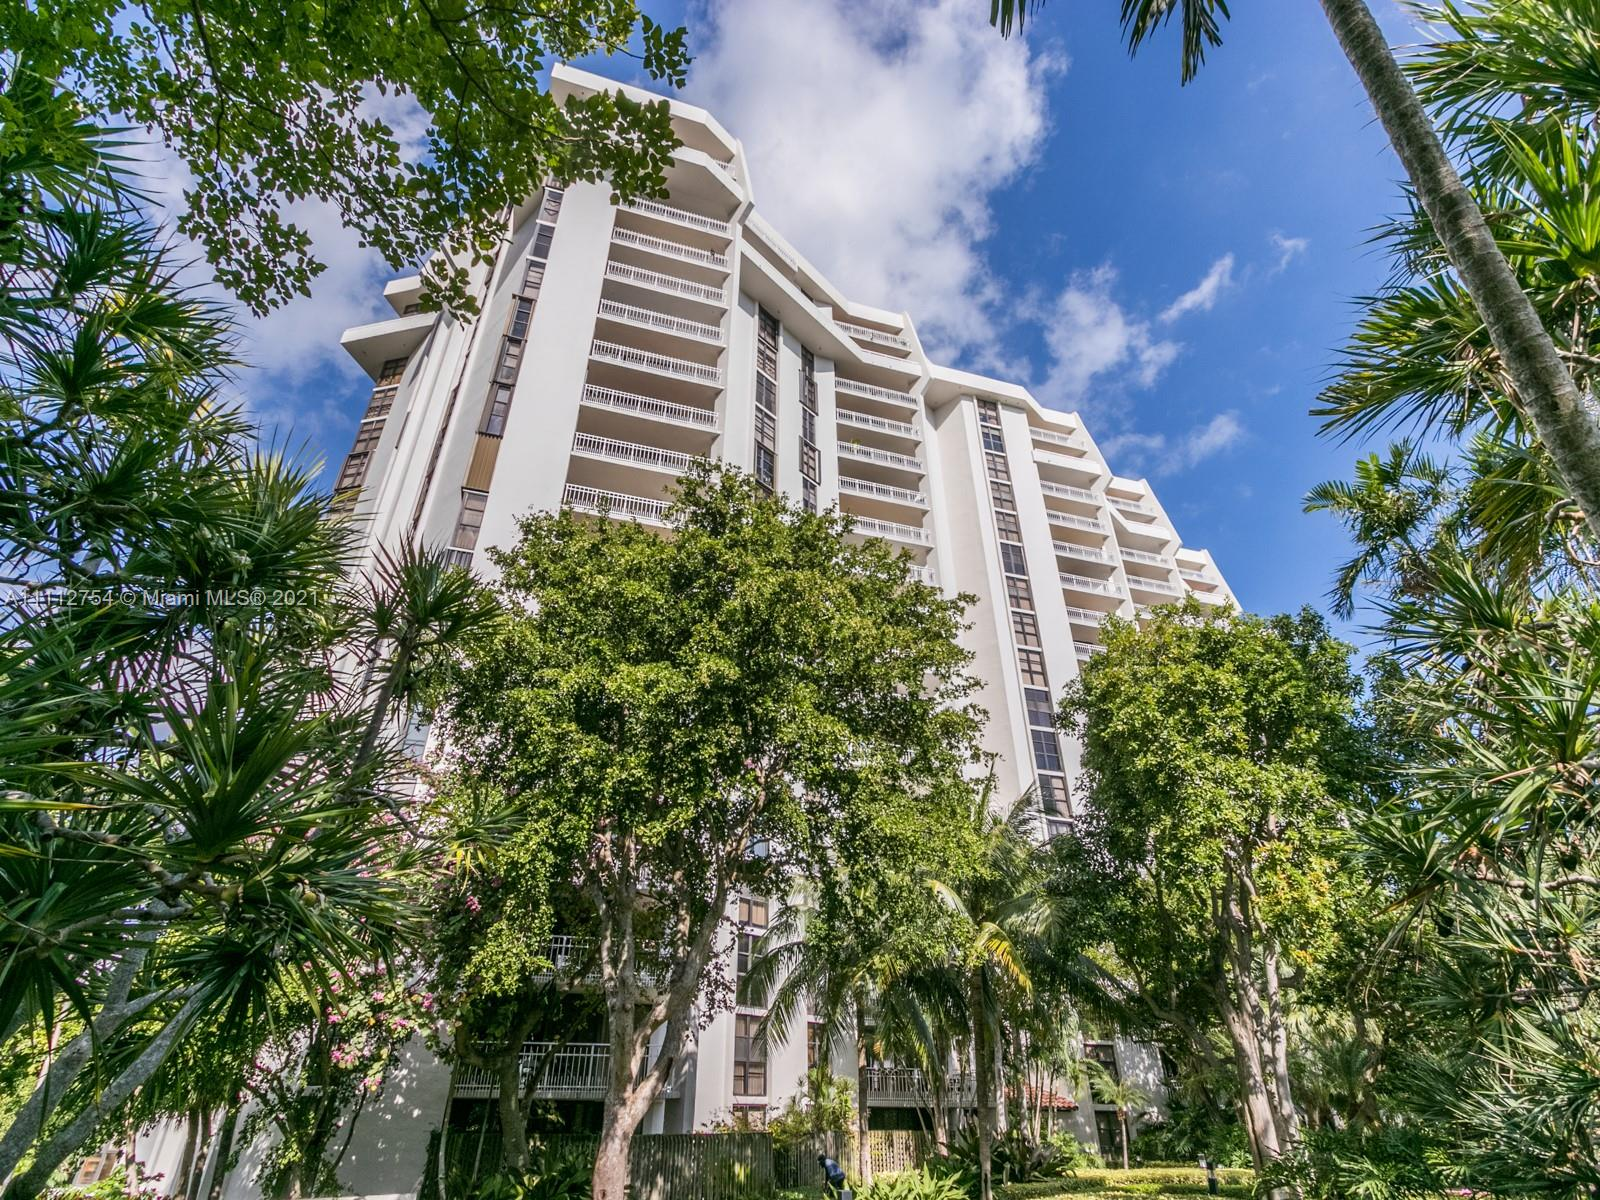 TOWERS OF QUAYSIDE CONDO Condo,For Sale,TOWERS OF QUAYSIDE CONDO Brickell,realty,broker,condos near me